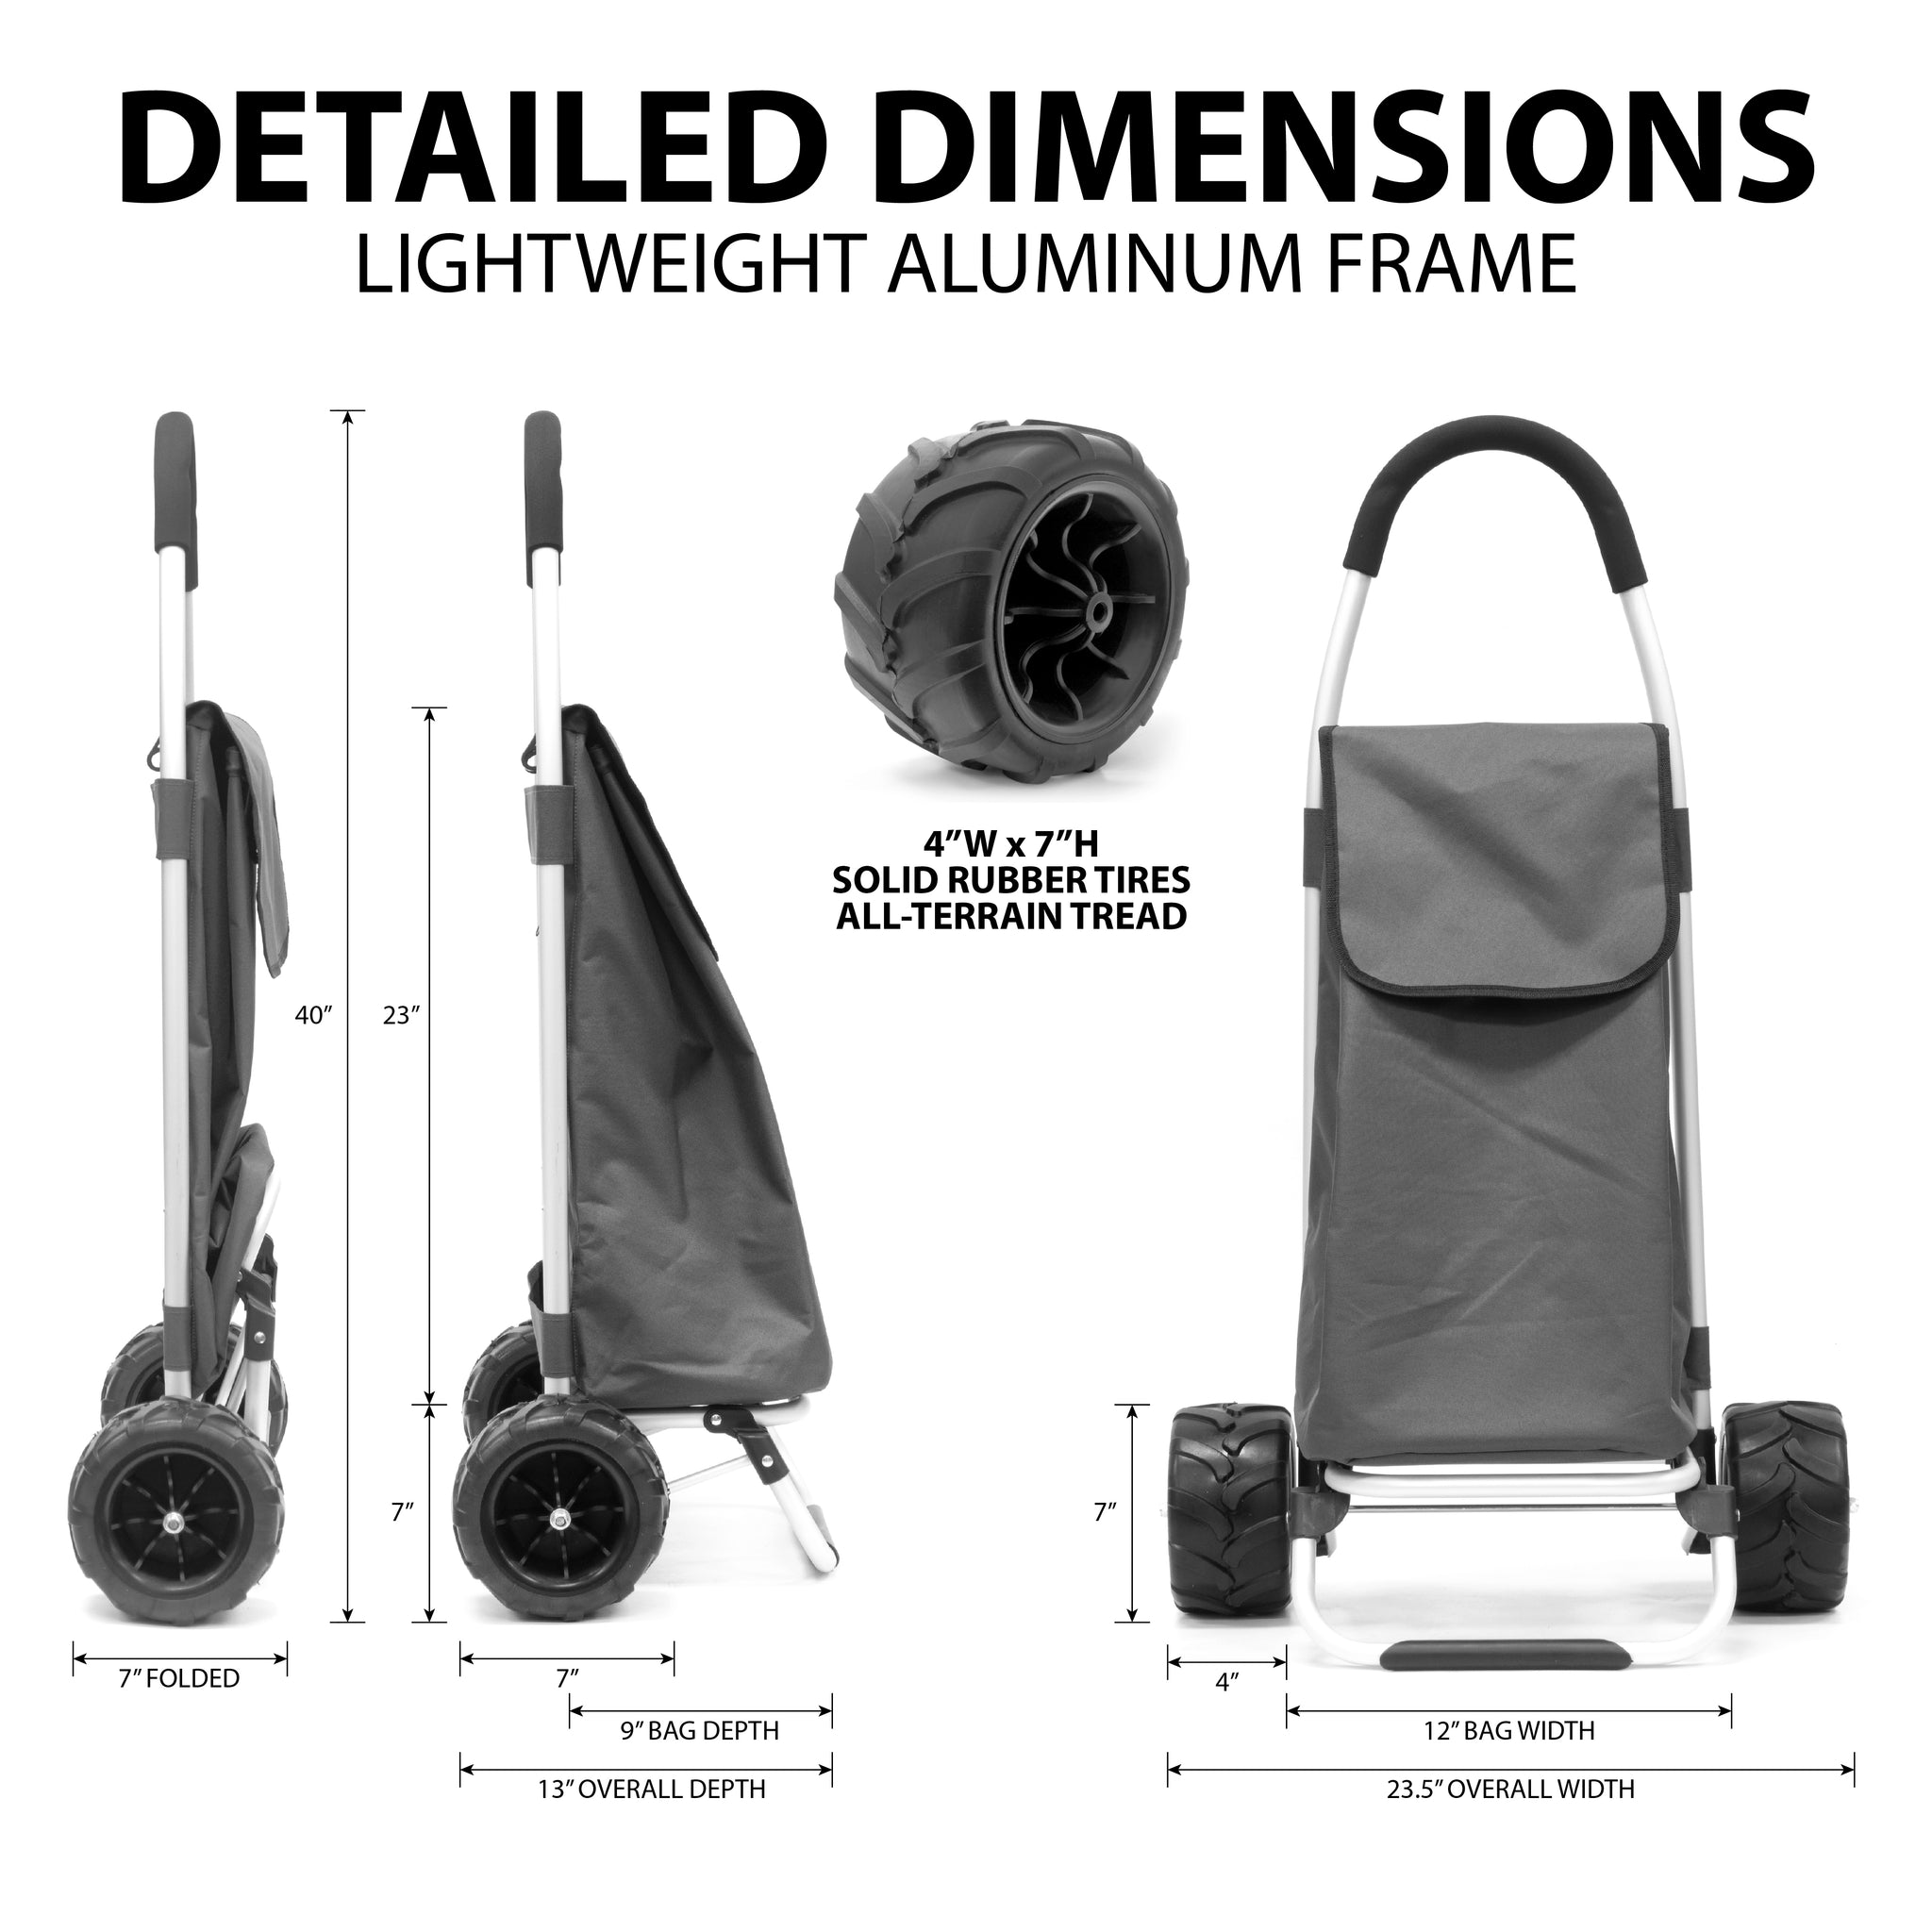 All-Terrain Folding Aluminum Trolley with Removable Cinch-Top Bag Dimensions 890100